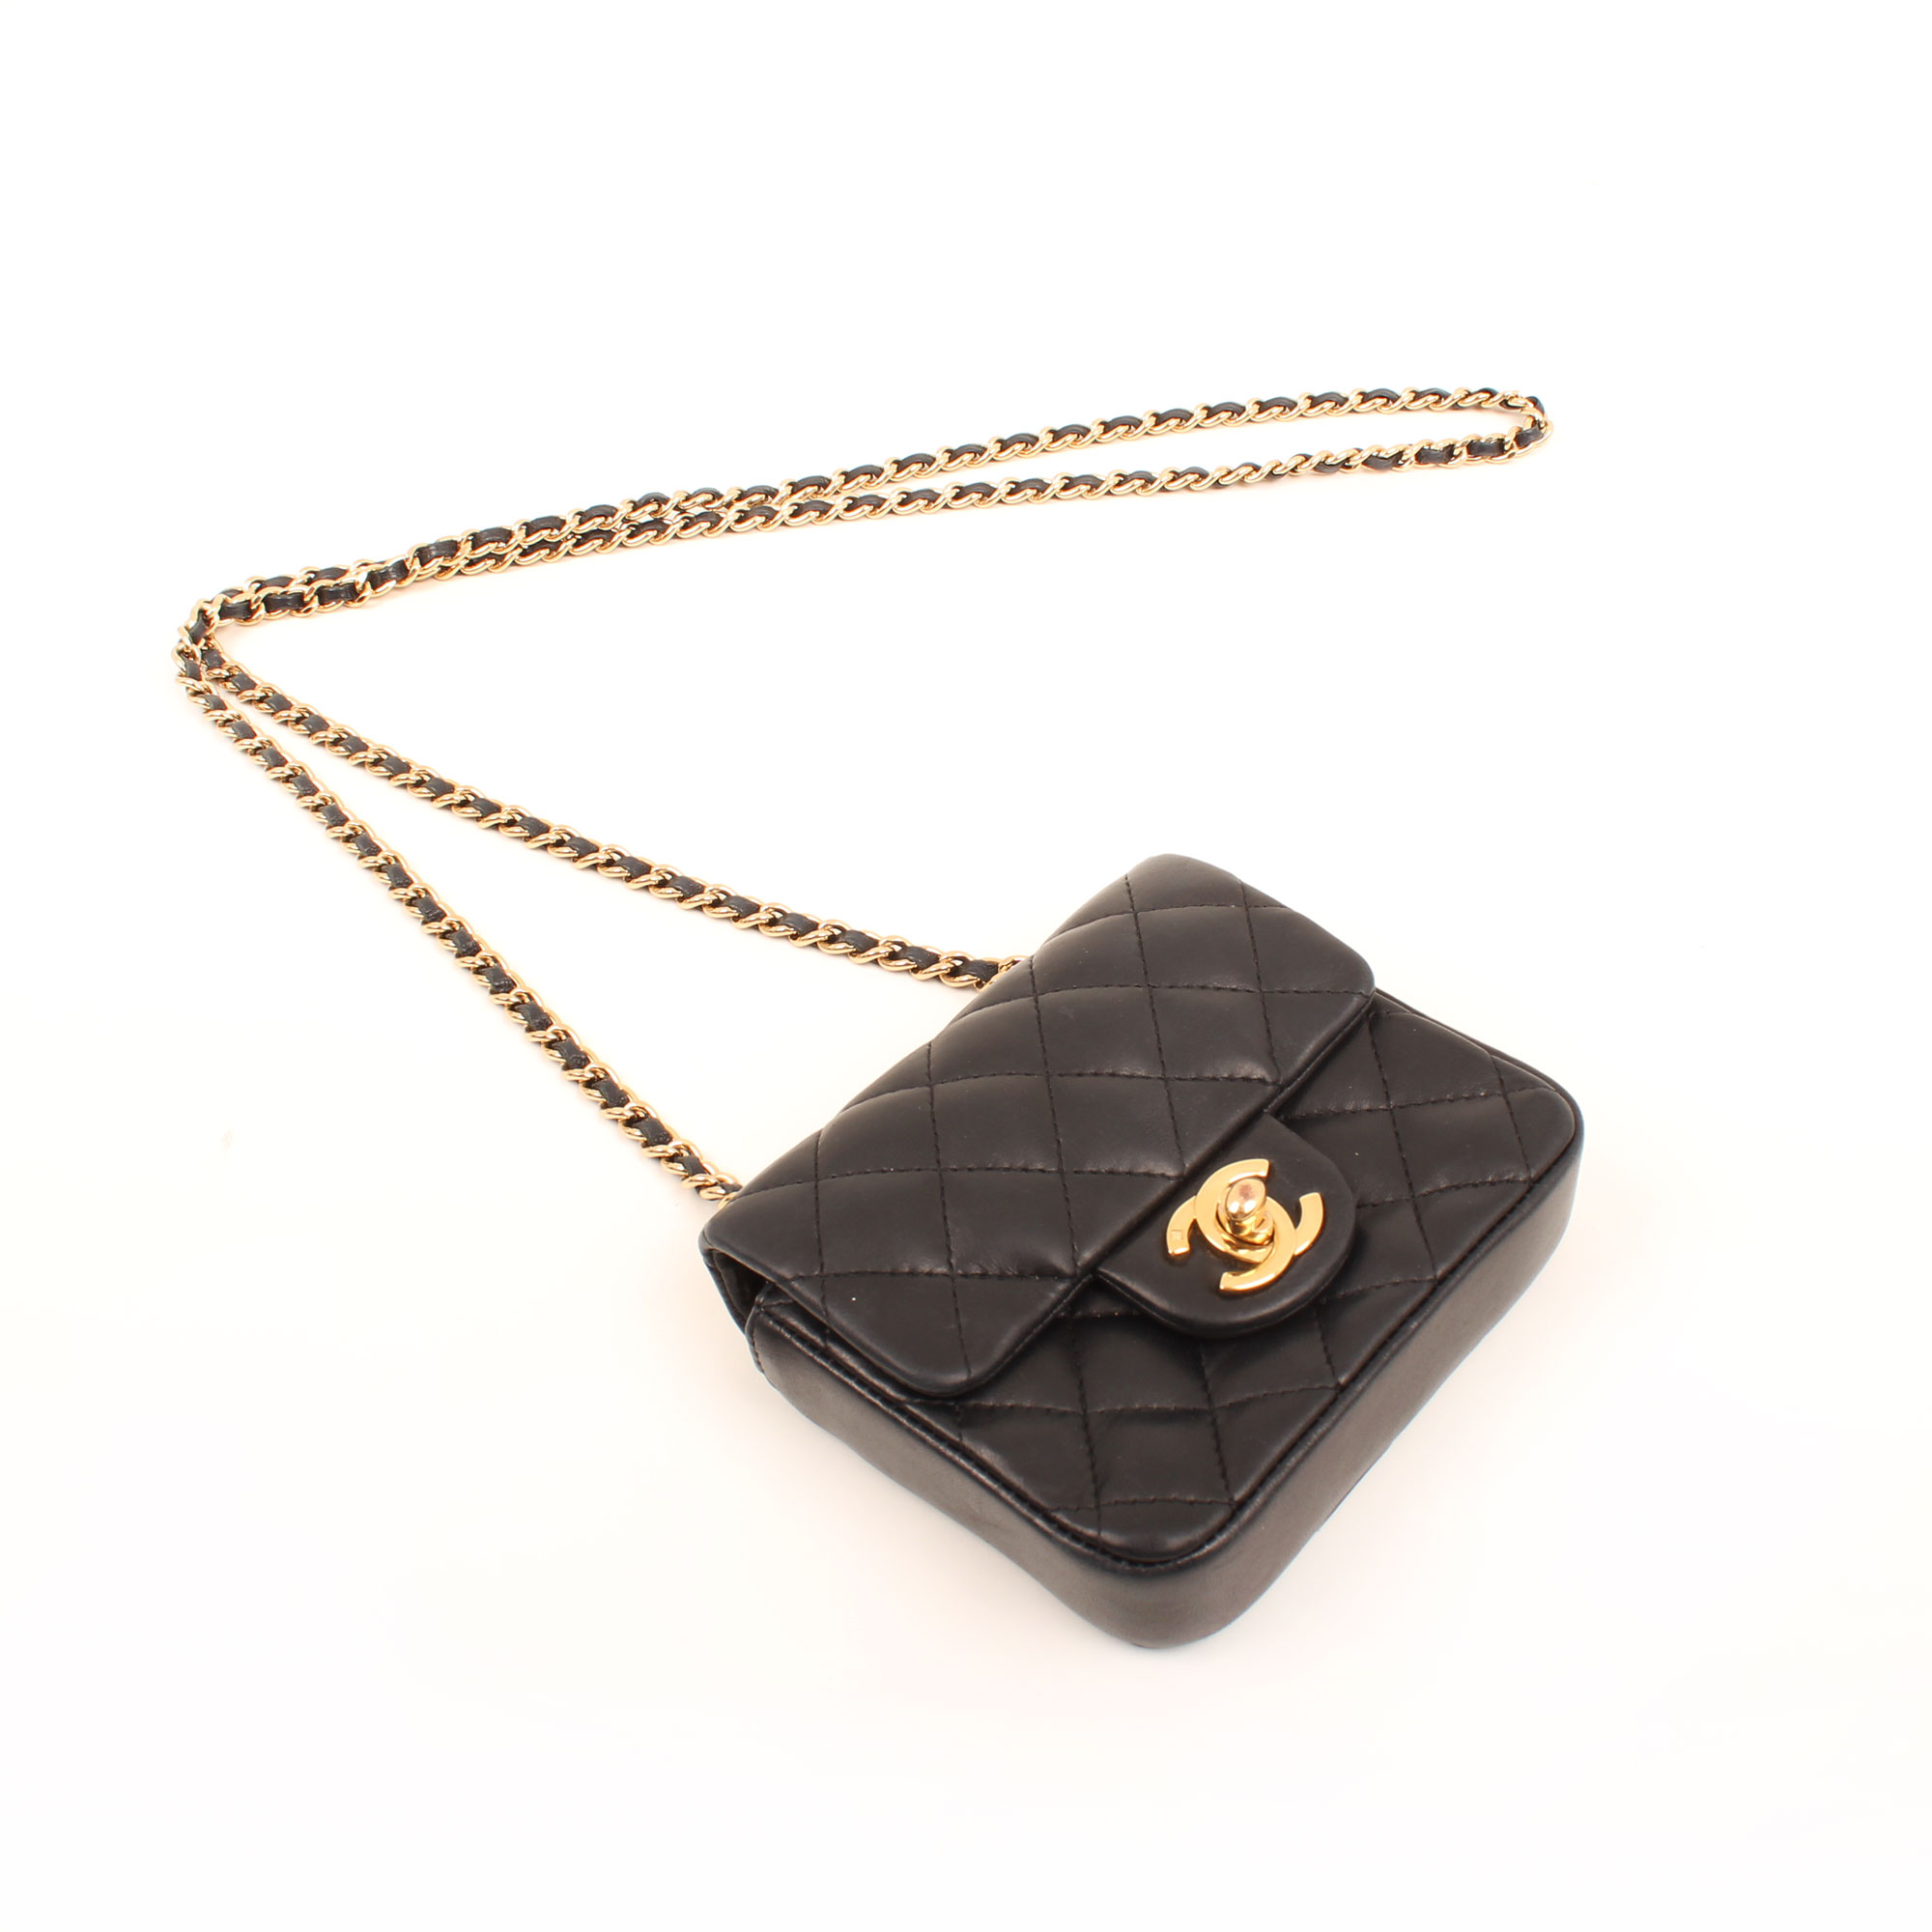 Imagen general 2 del bolso chanel micro mini black